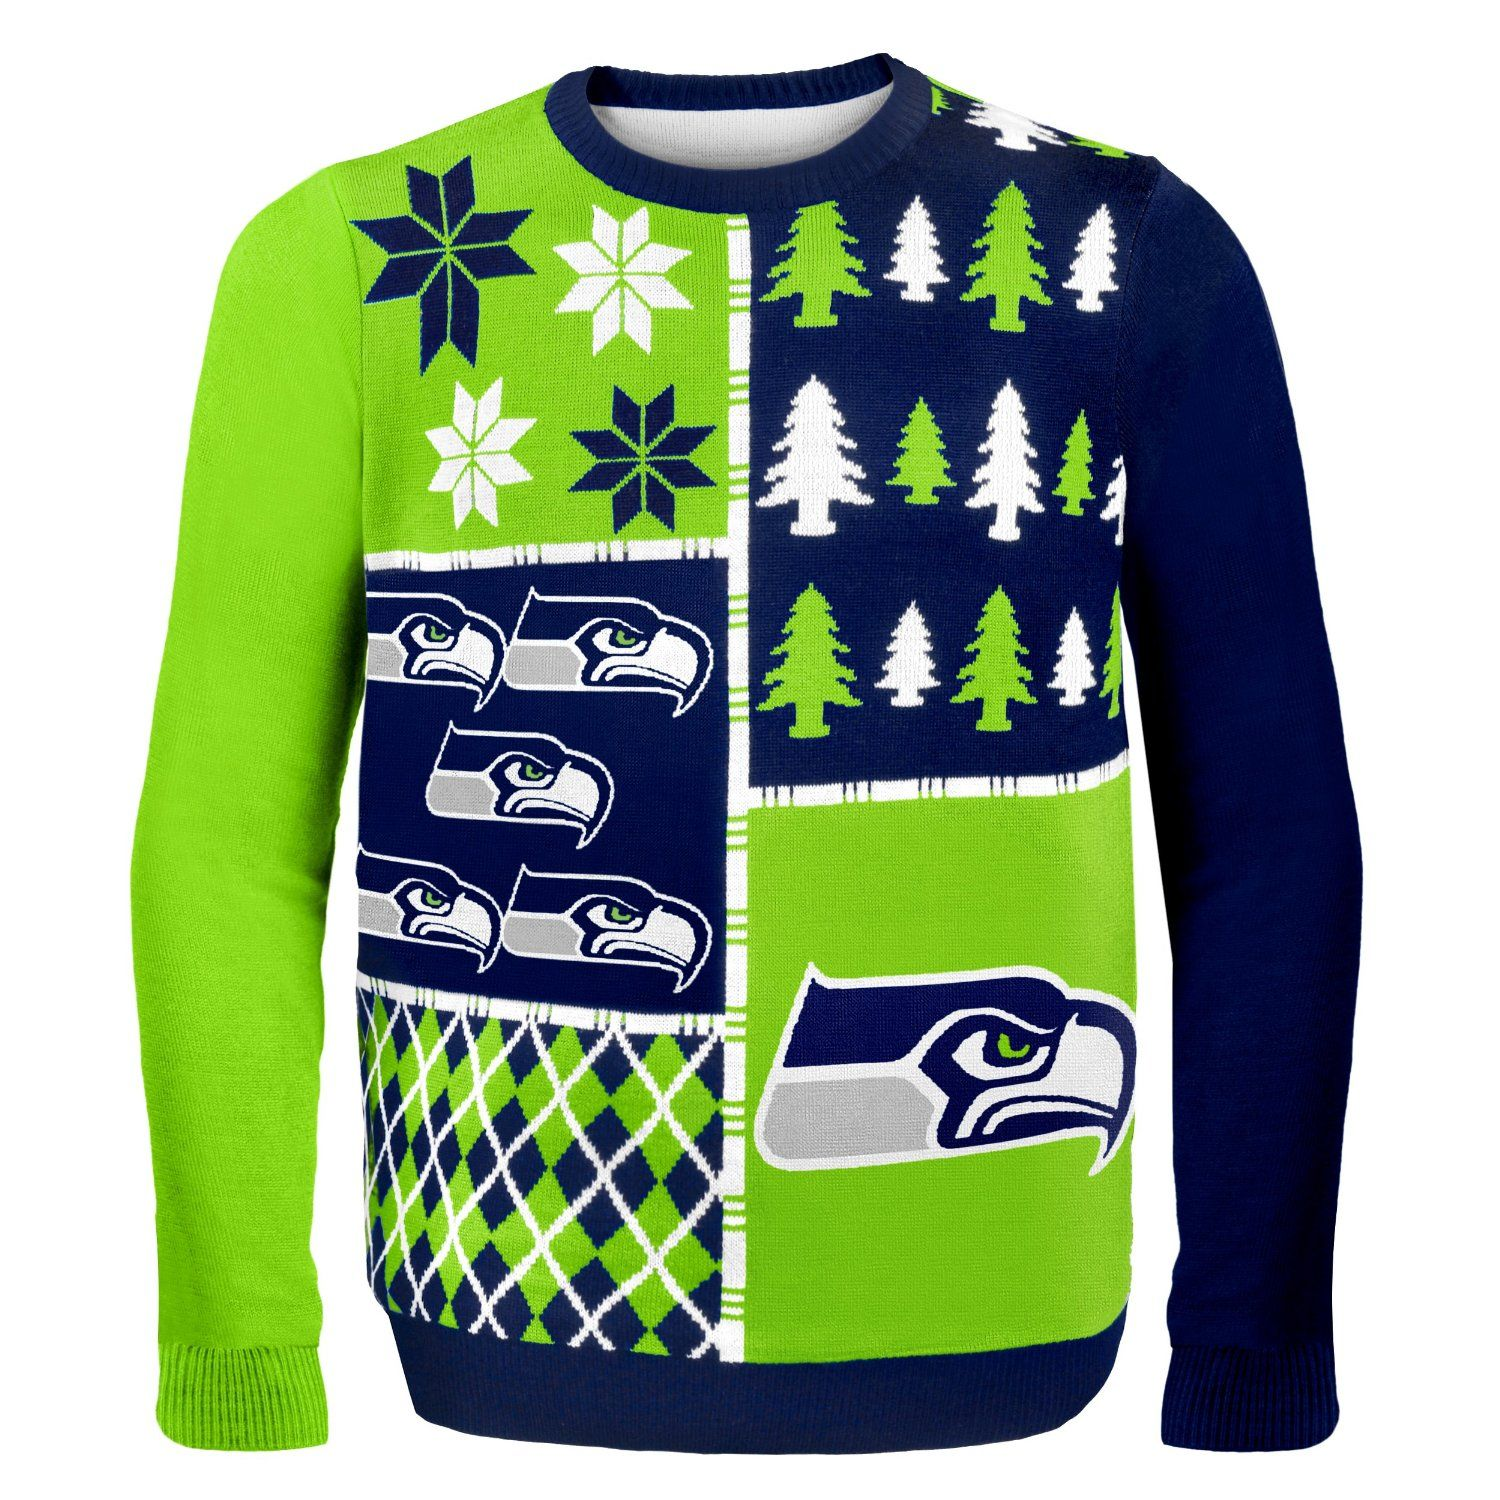 Ugly Christmas Sweaters On Sale – start at  11 (Seahawks Ugly Sweater for   29.99)! acd37f06c